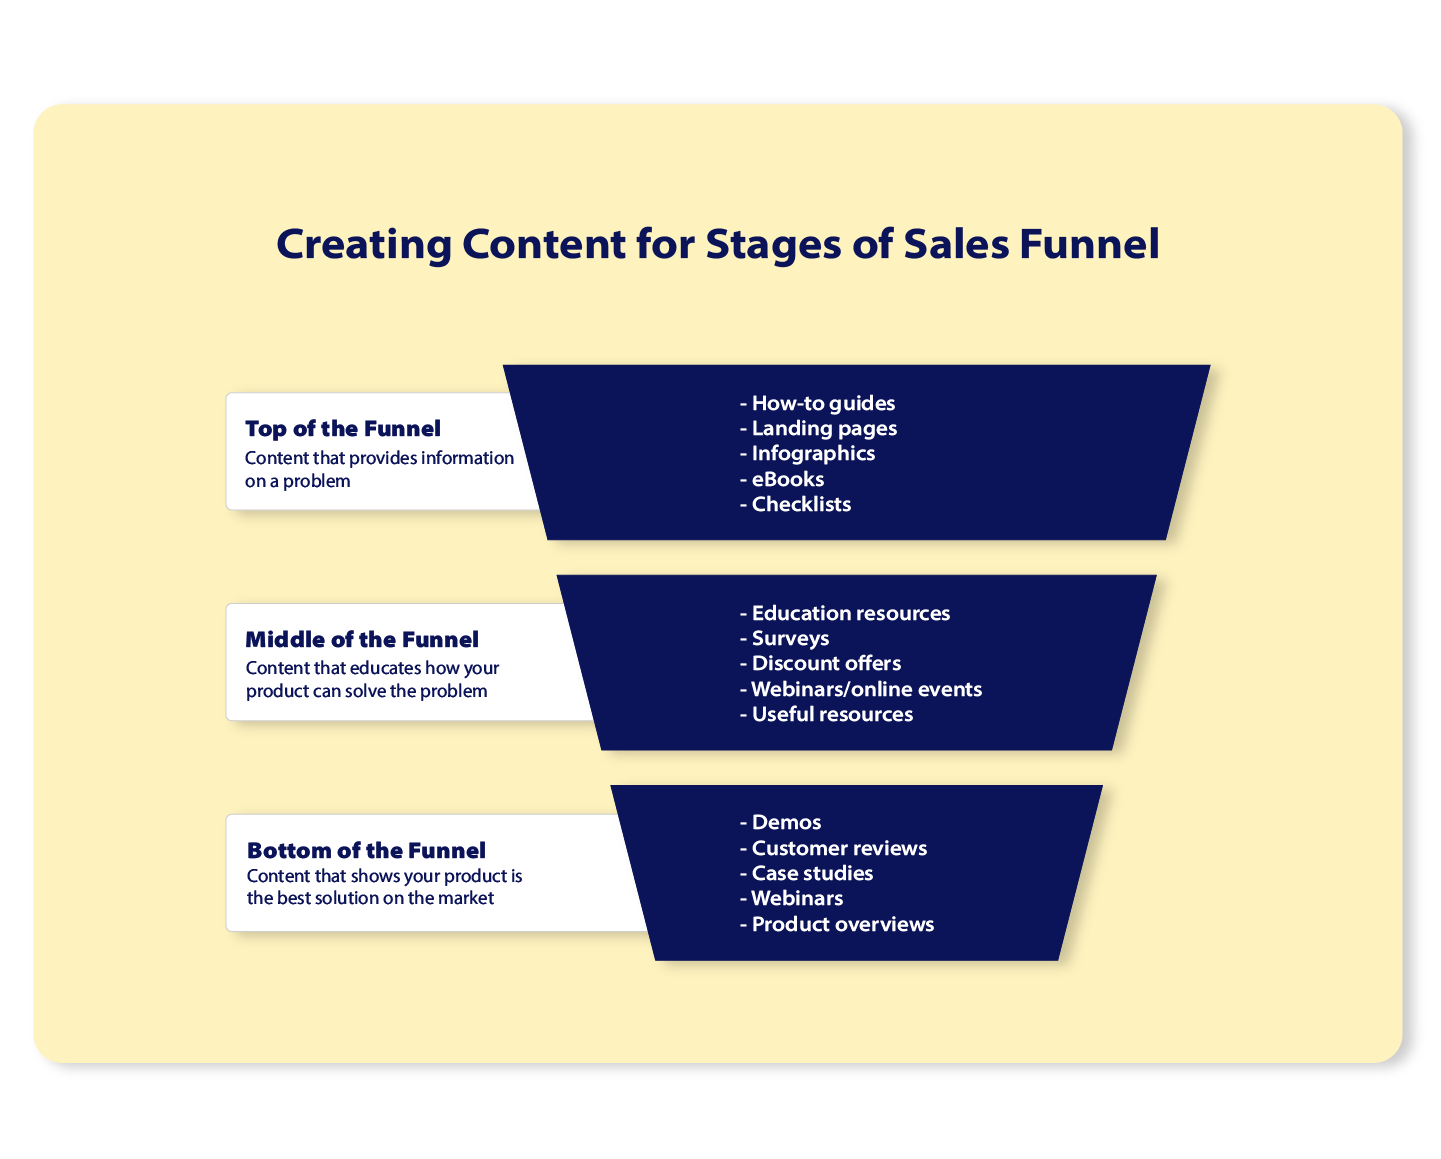 Funnel describing content for each stage of the sales funnel